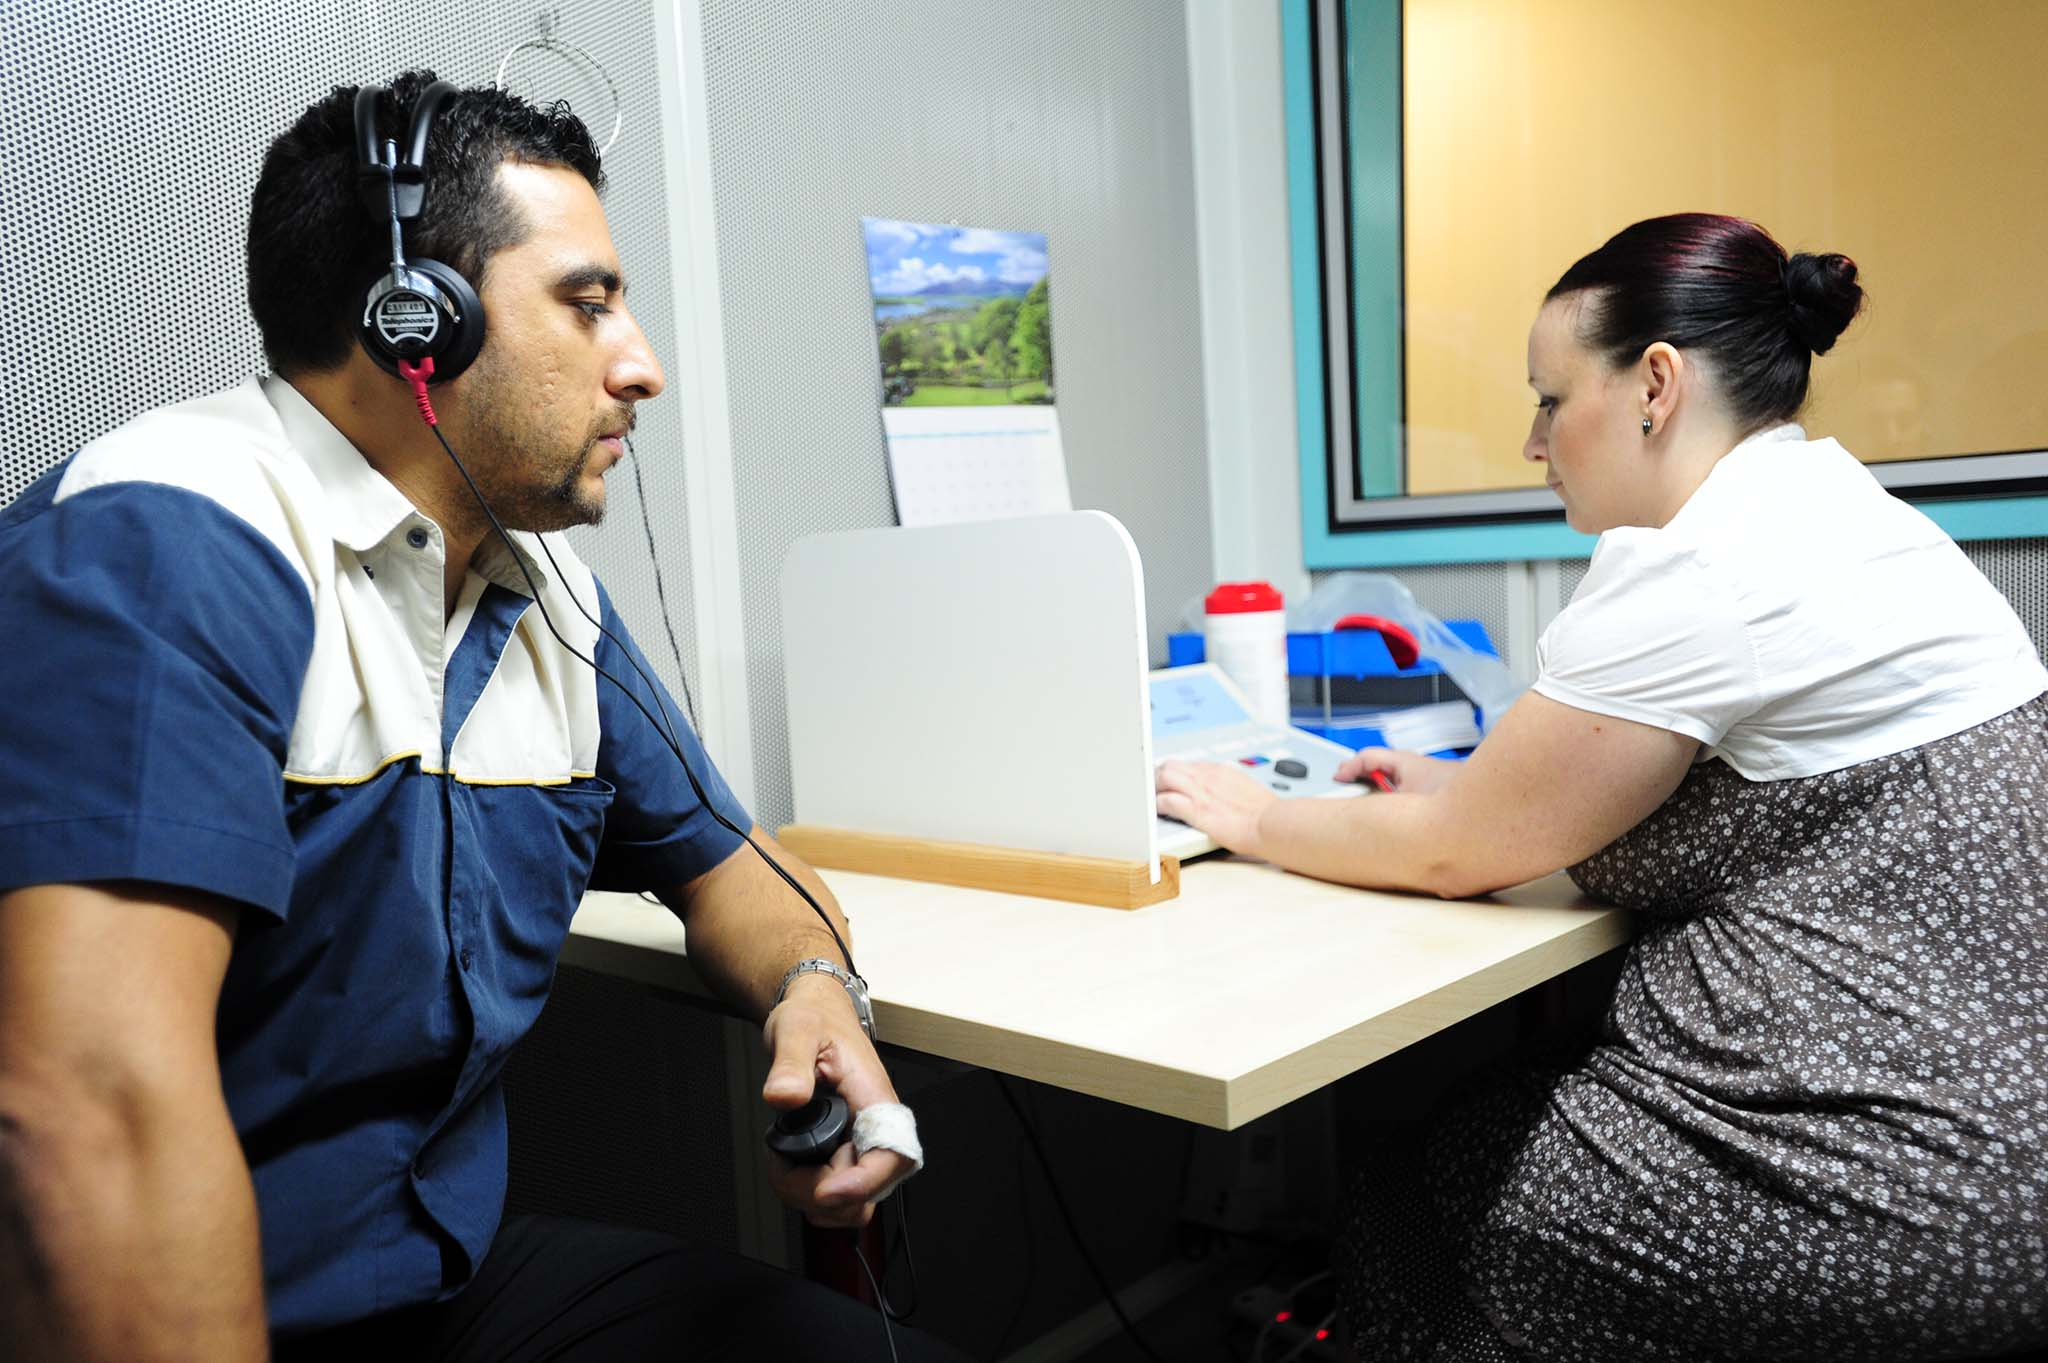 Audiology test being performed on a patient